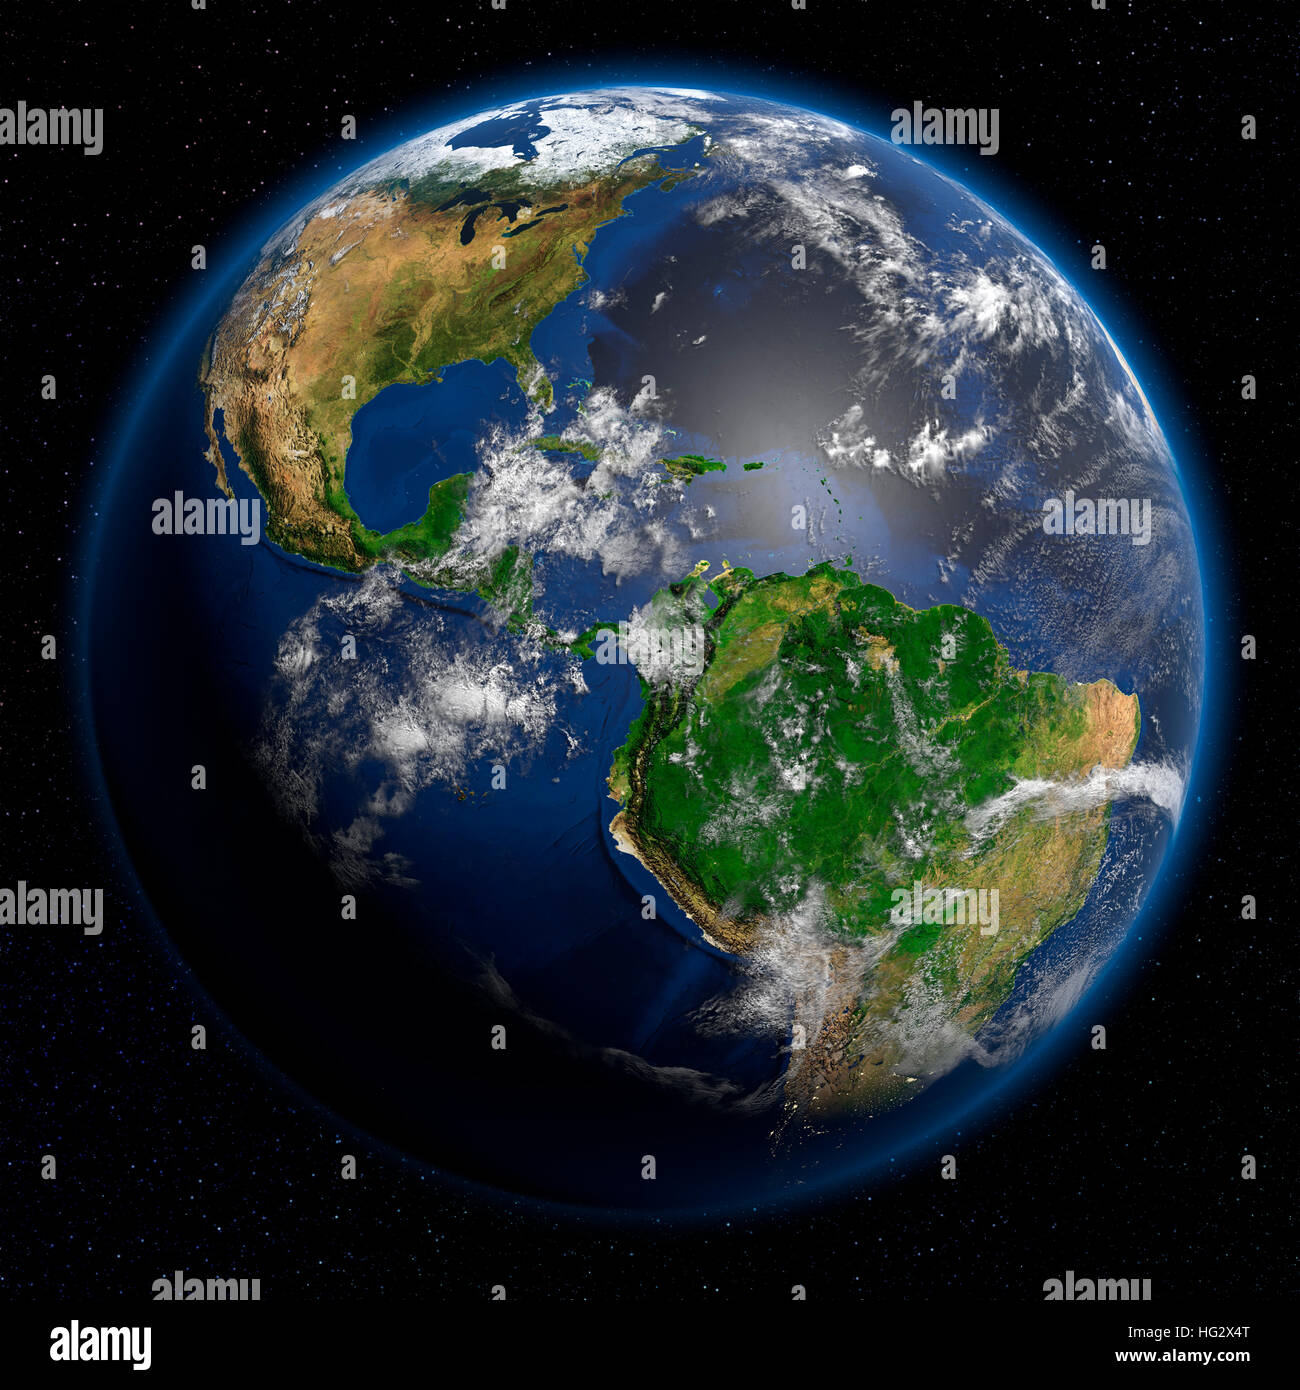 Earth viewed from space showing Central and Latin America. Realistic digital illustration including relief map hill - Stock Image